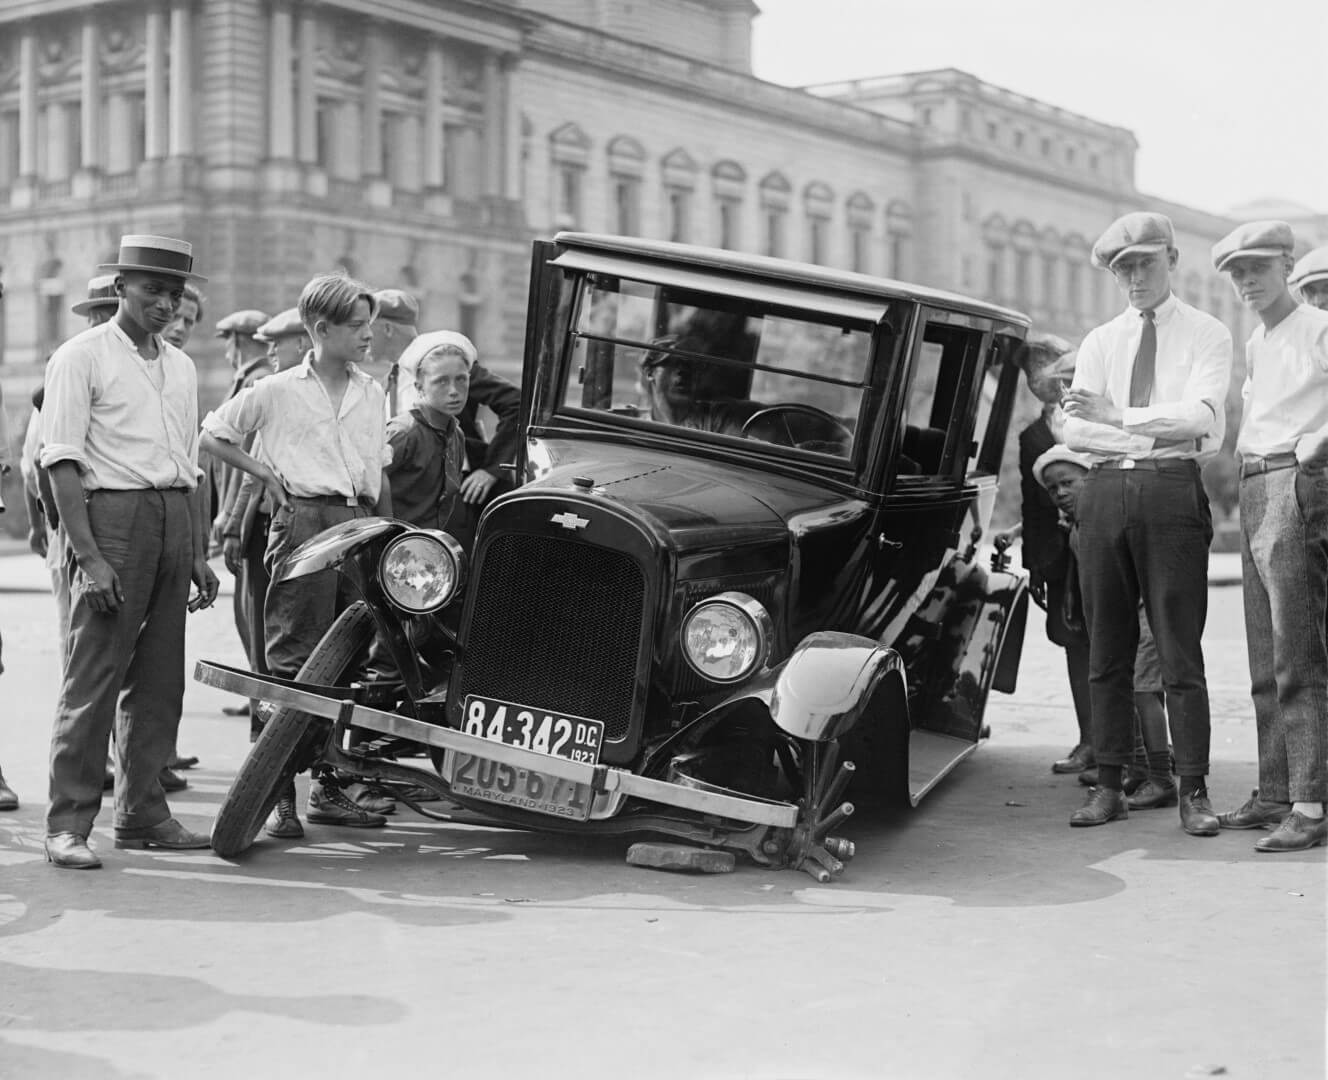 Vintage car - don't let an outage wreck your business